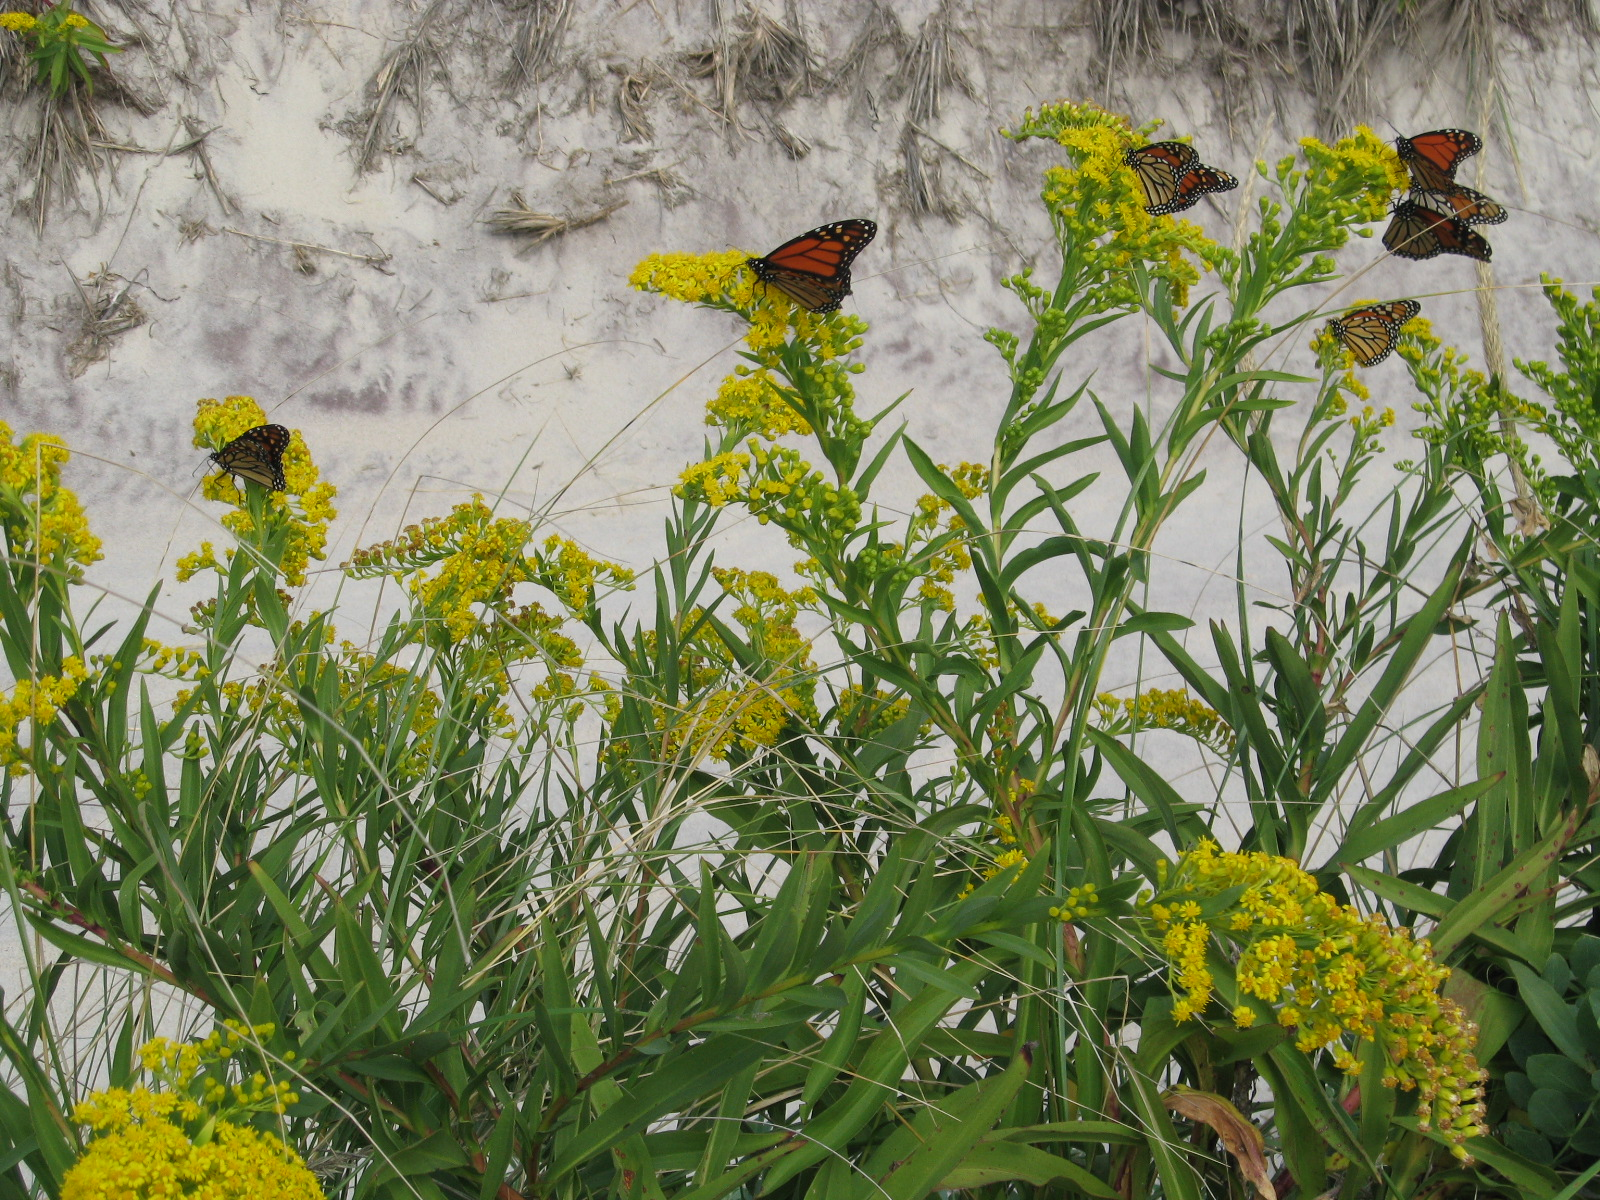 Monarchs rest on goldenrod.